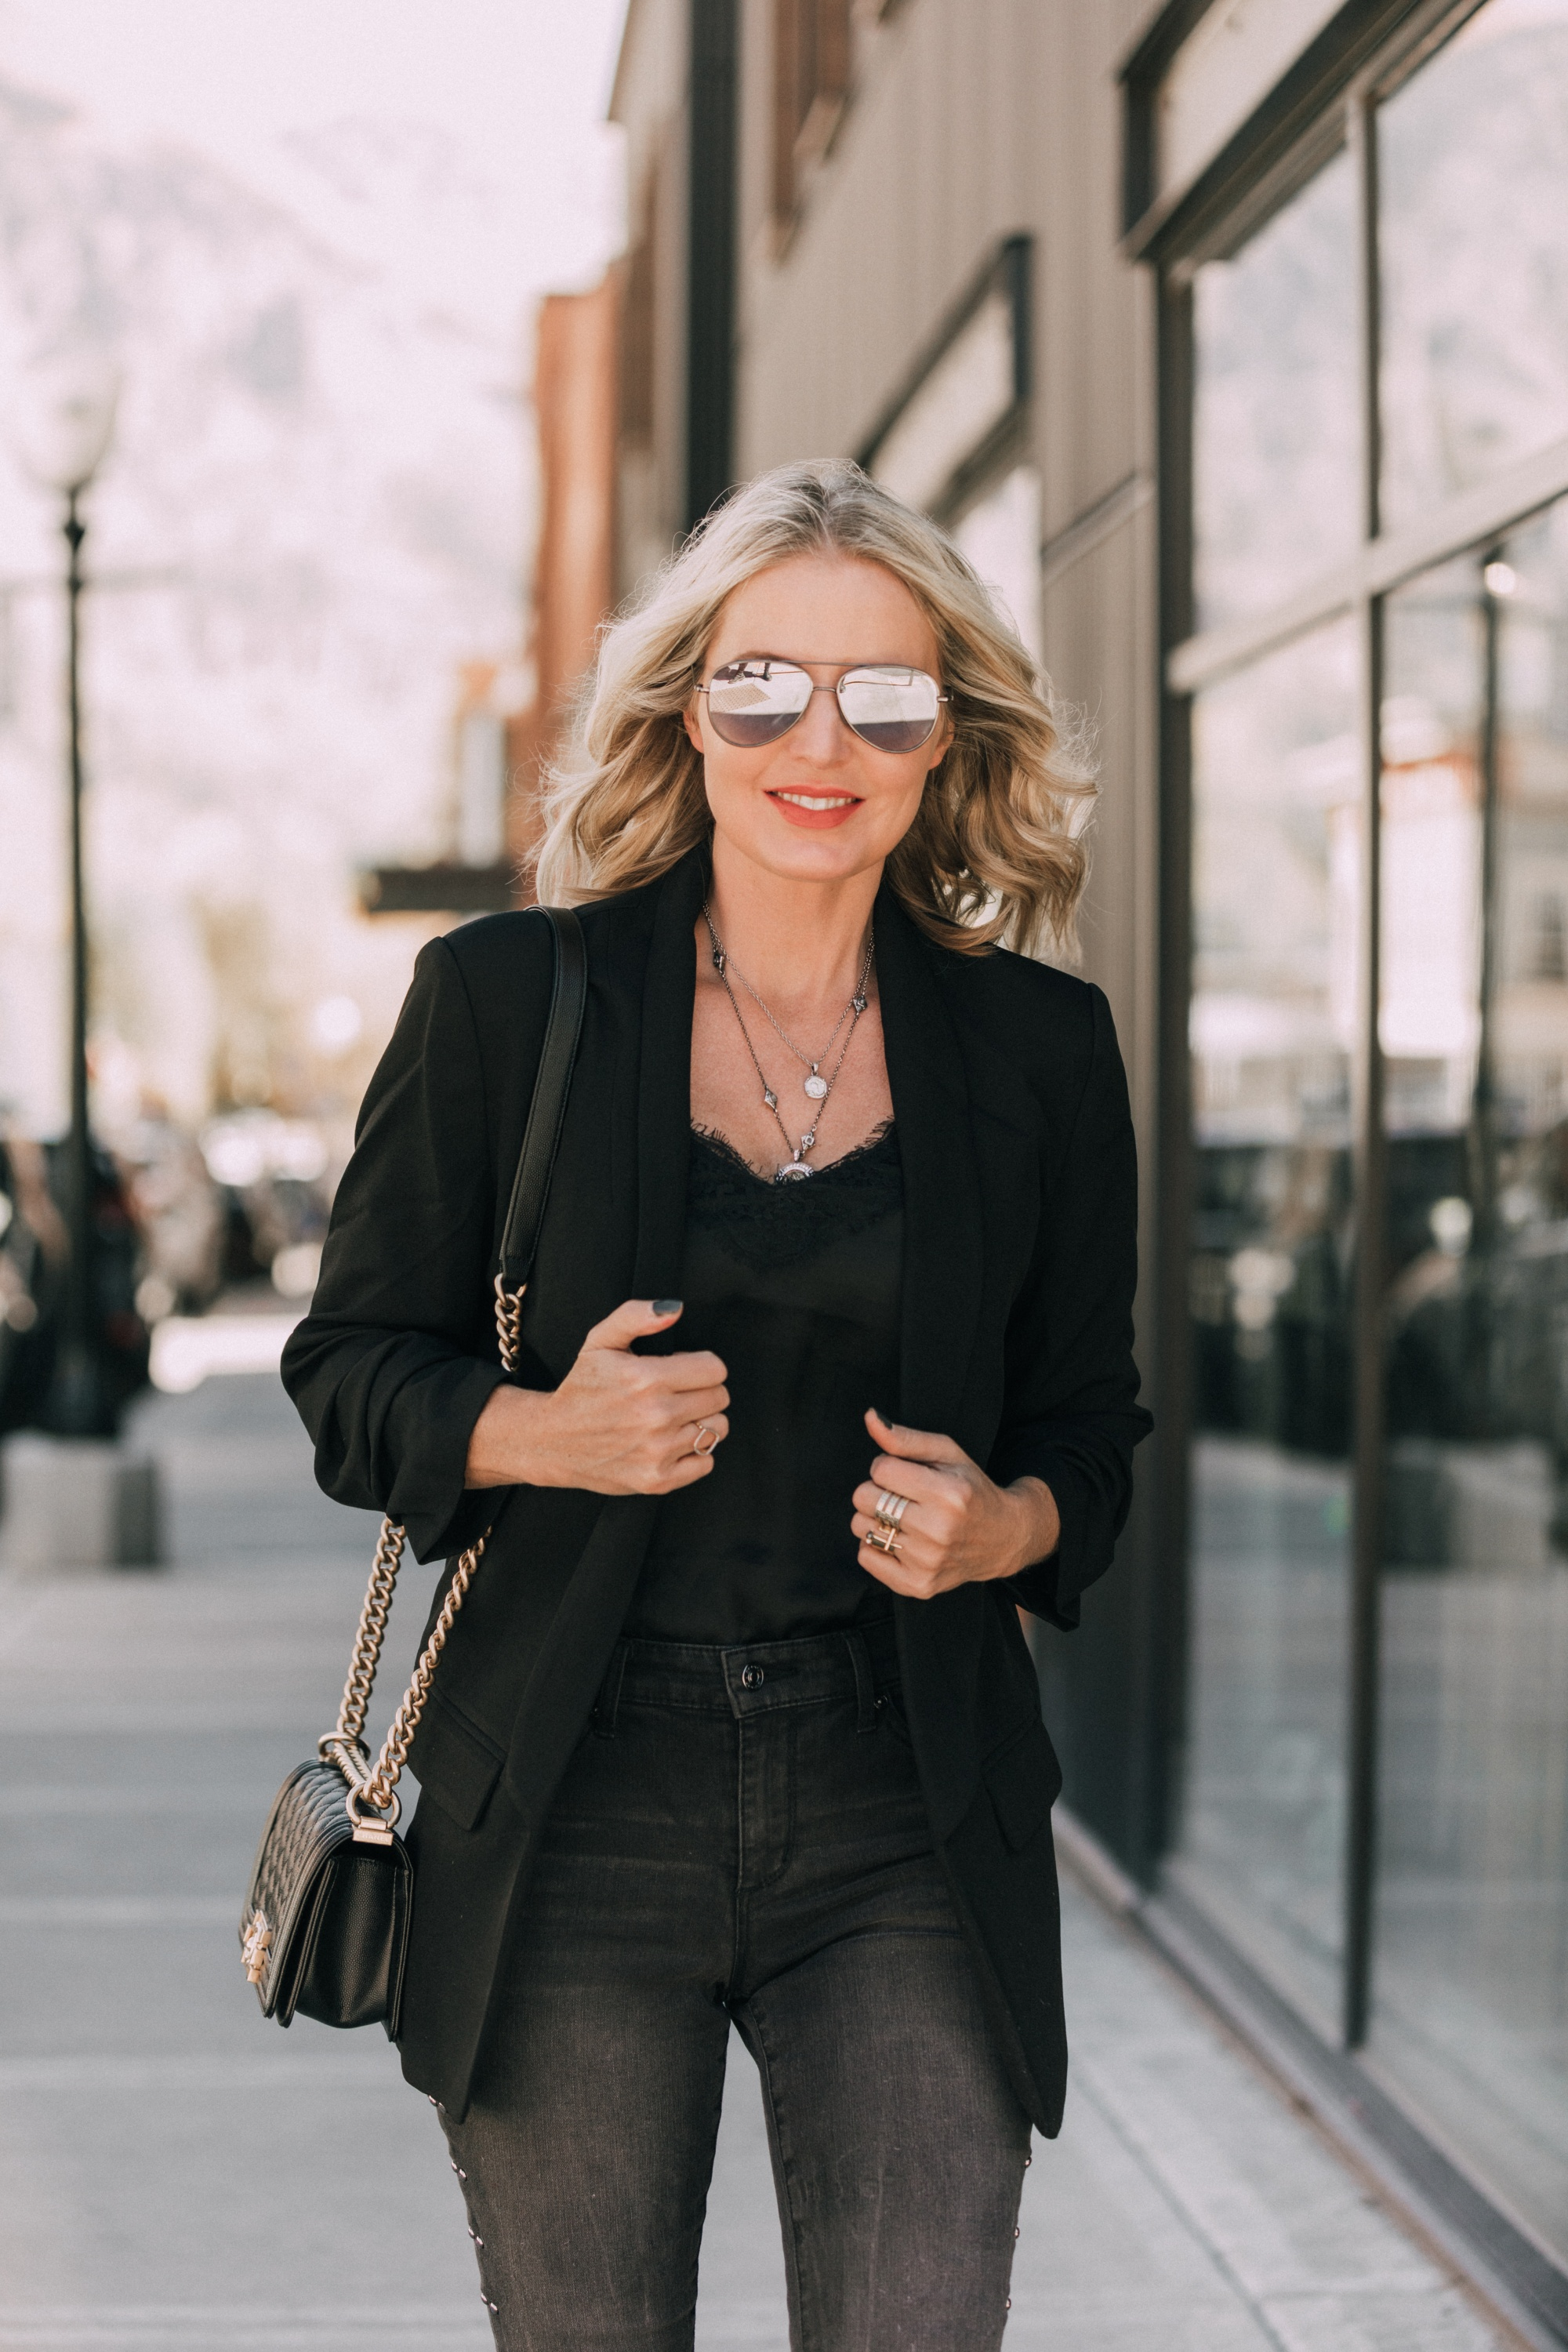 Boyfriend Blazer, Fashion blogger Erin Busbee of BusbeeStyle.com wearing a black boyfriend blazer and black studded jeans Scoop with a black cami and black bag from Walmart in Telluride, CO